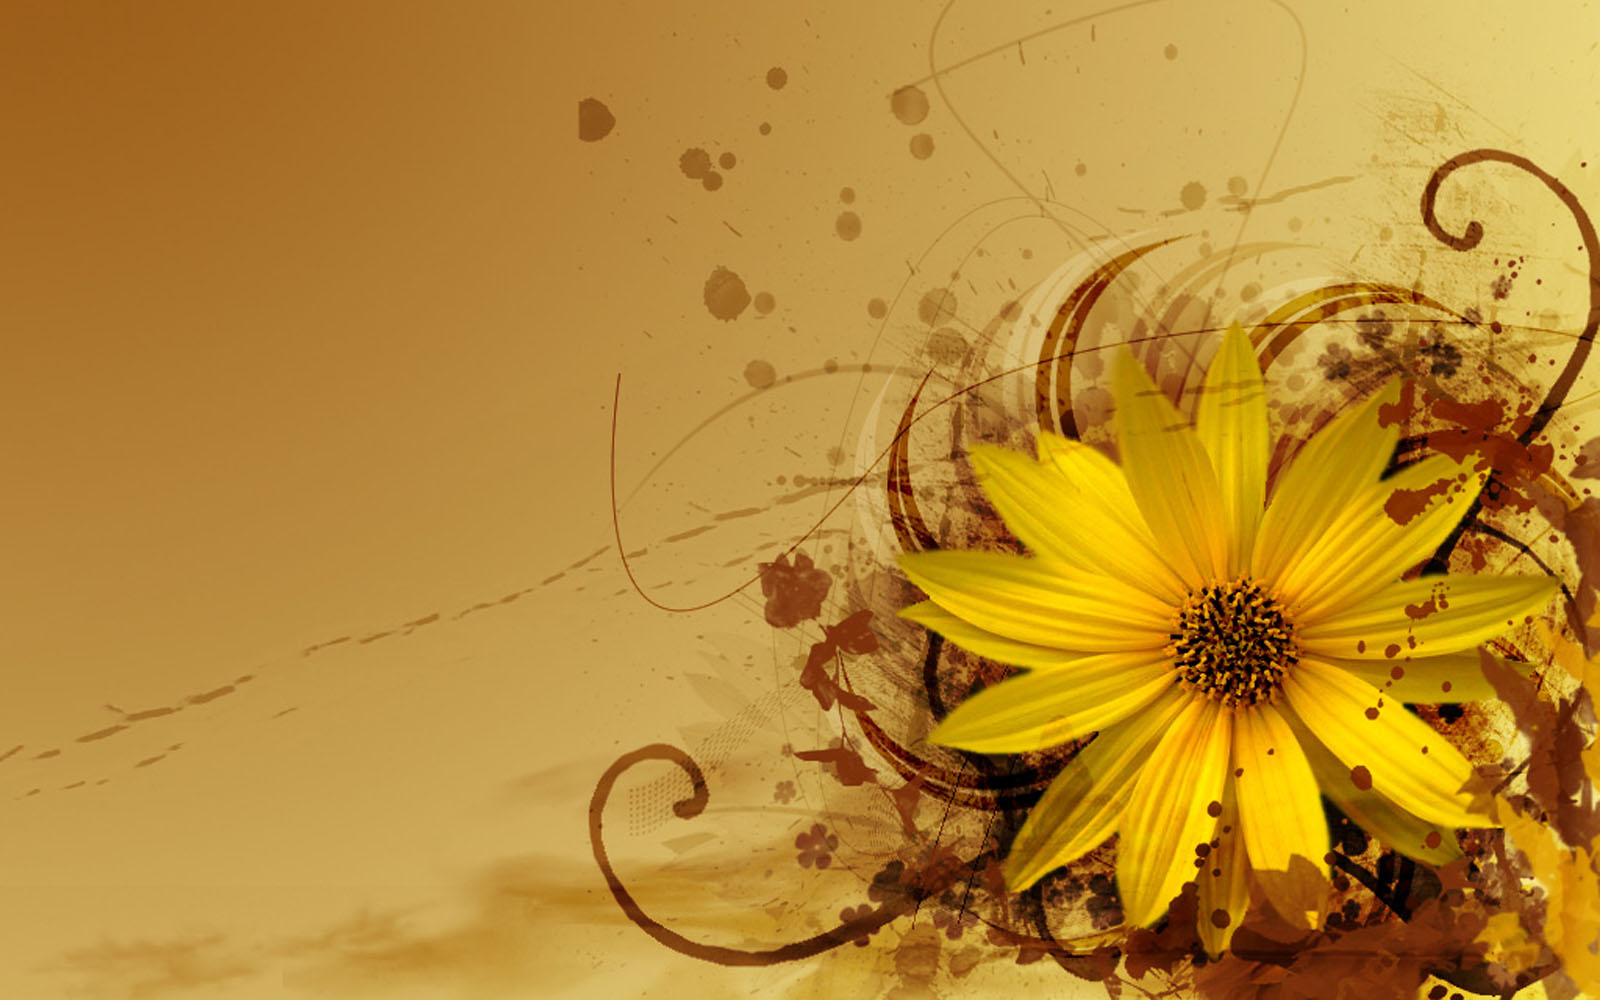 wallpapers: Windows 7 Flowers Wallpapers